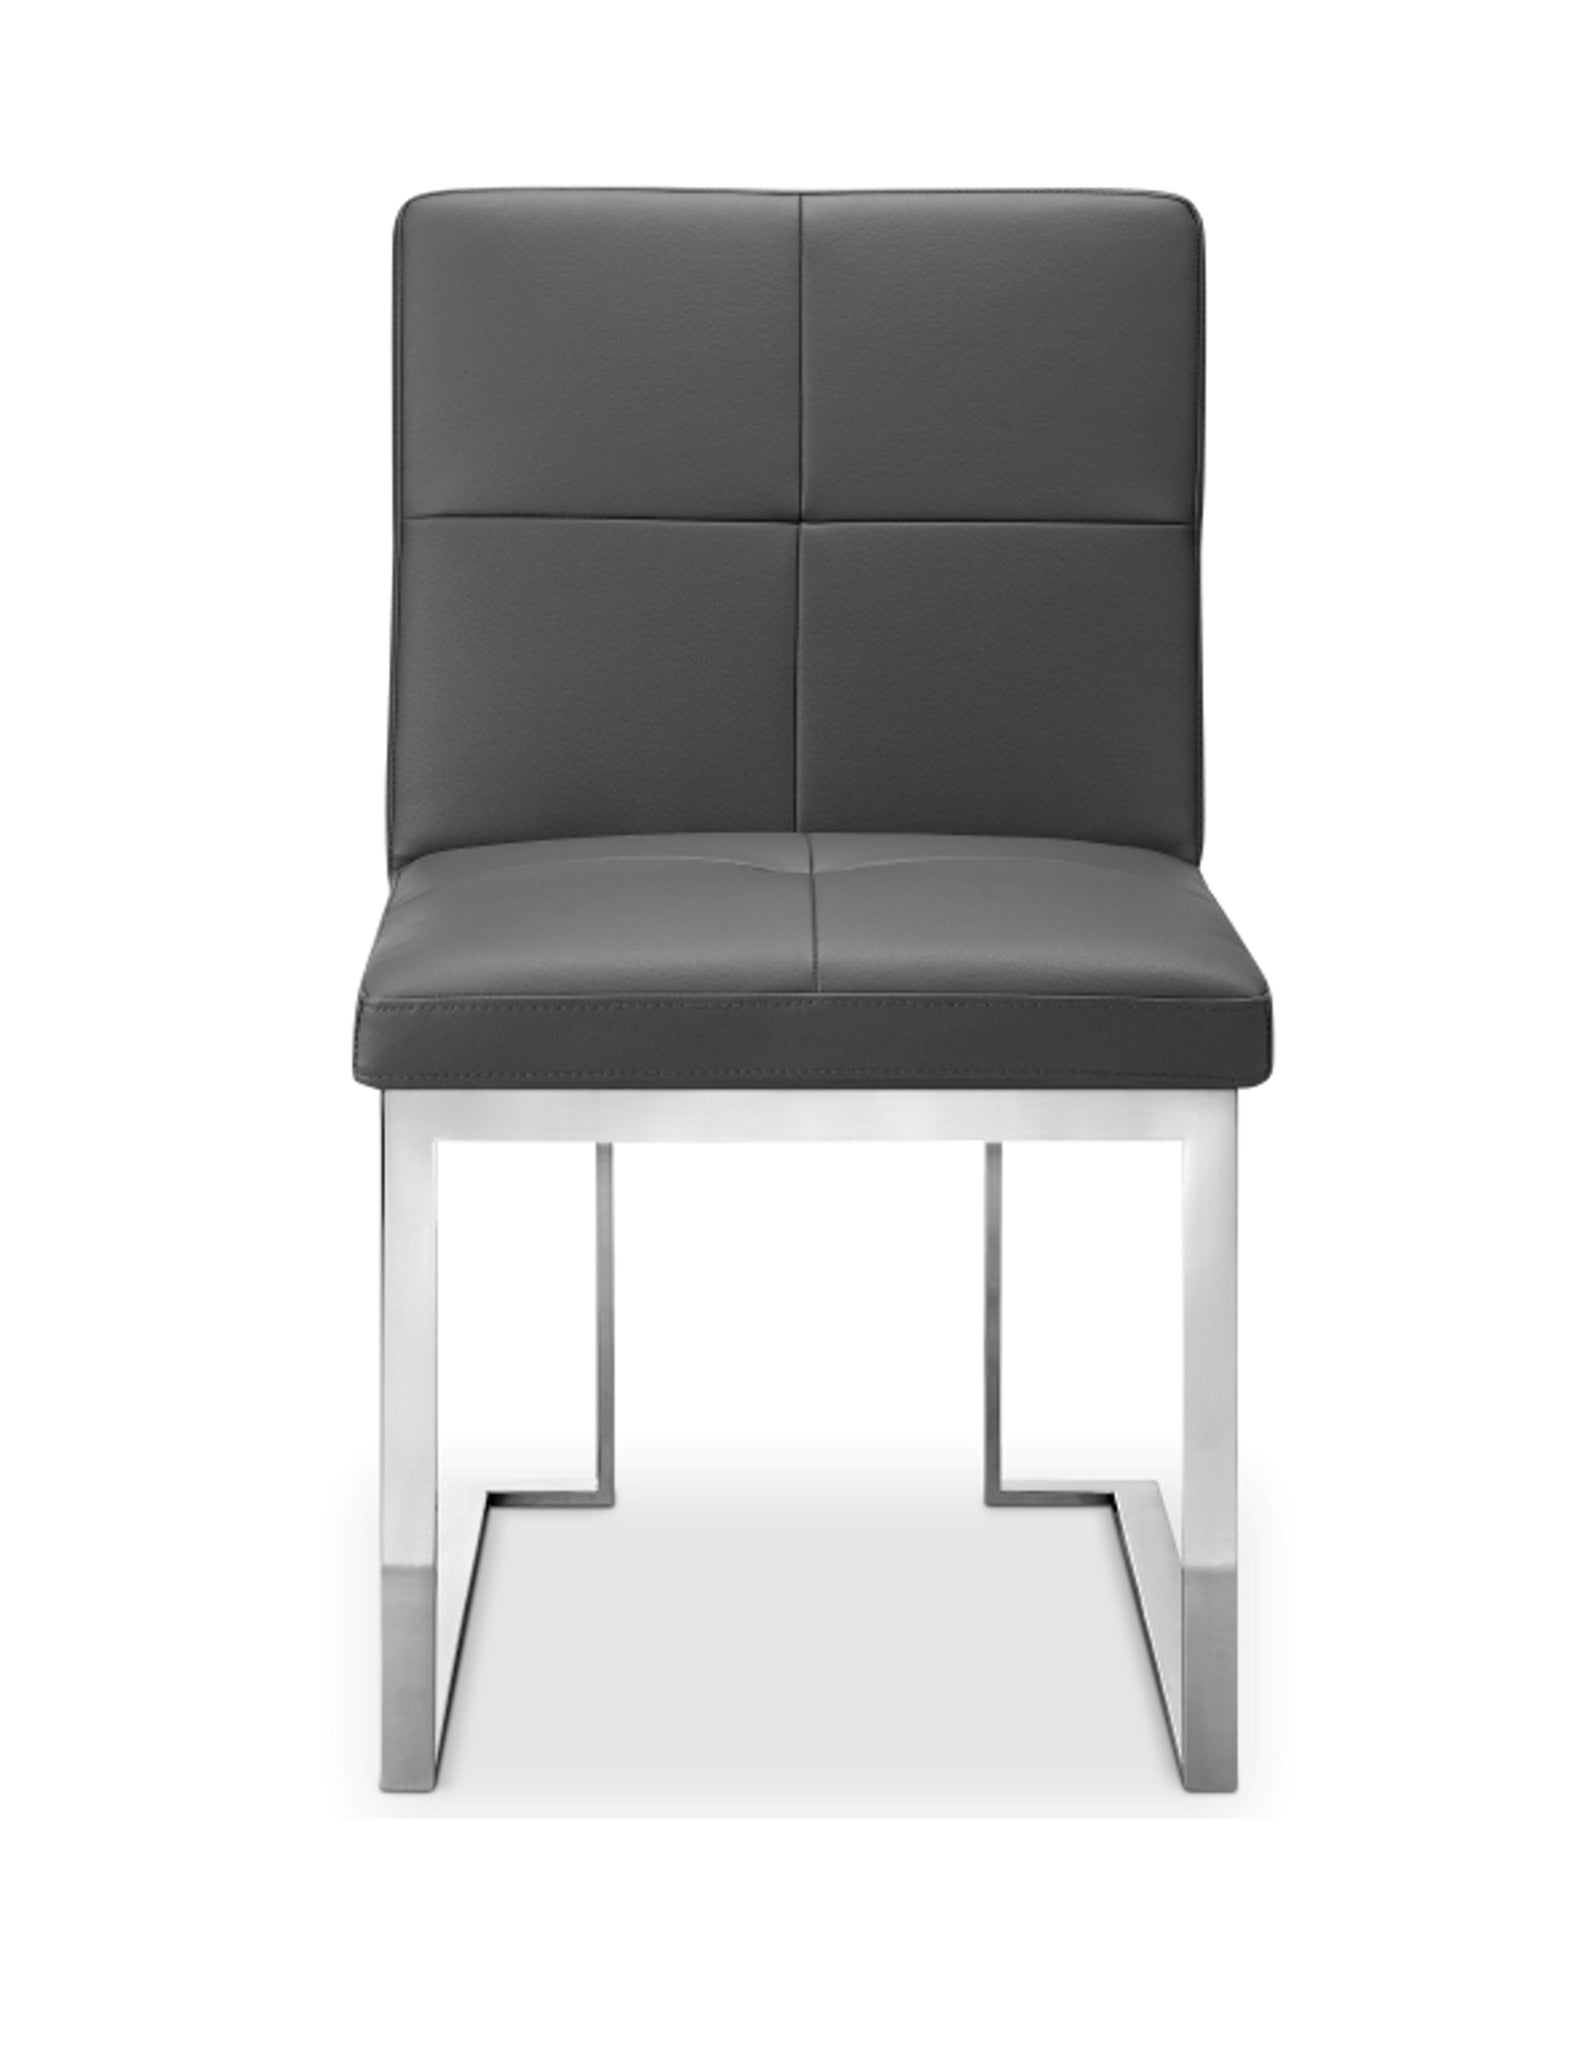 Bona Chair